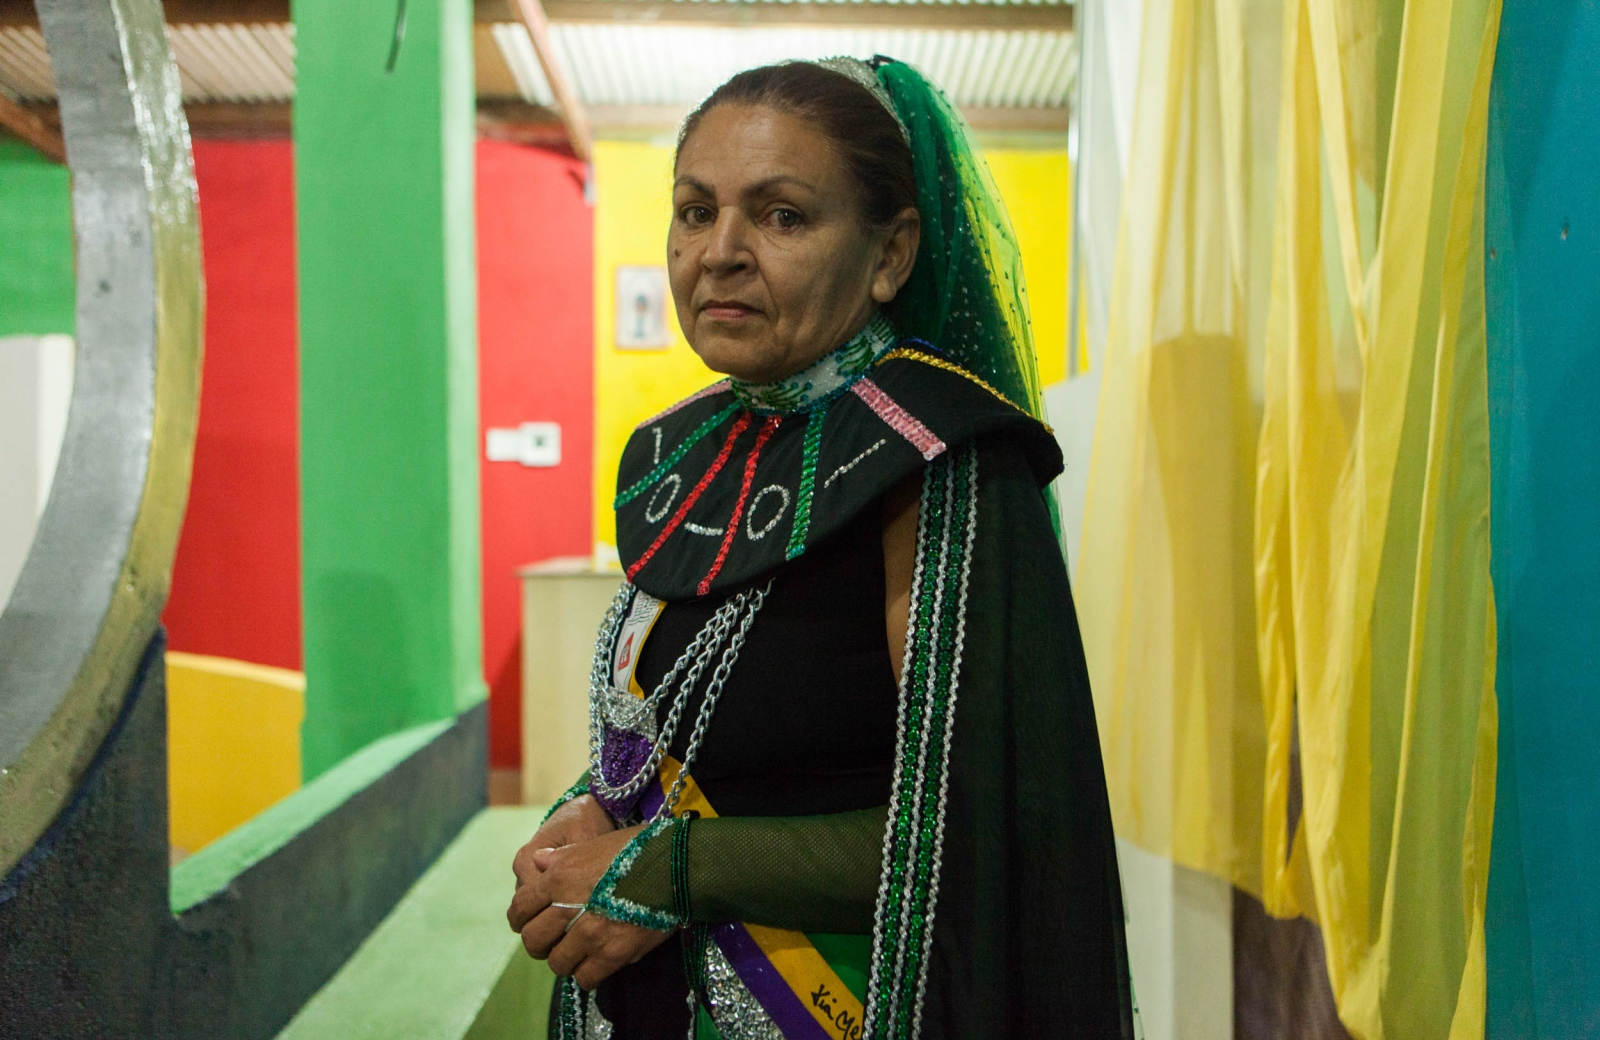 ·  Tania has been attending the temple for over ten years. At least eight members of her family are part of the Valley of the Dawn, including her smallest grandson who is now three years old. Besides spiritual growth and energy manipulation, the temple serves as a community base for several families and individuals.Cavalcante do Goais, 2015.  // · Tania ha acudido al templo por mas de diez años. Por lo menos ocho miembros de su familia son parte del Valle del Amanecer incluyendo su nieto más joven de tres años. Aparte de desarrollo espiritual, el templo sirve como una base comunitaria para varias familias e individuos. Cavalcante do Goais, 2015.